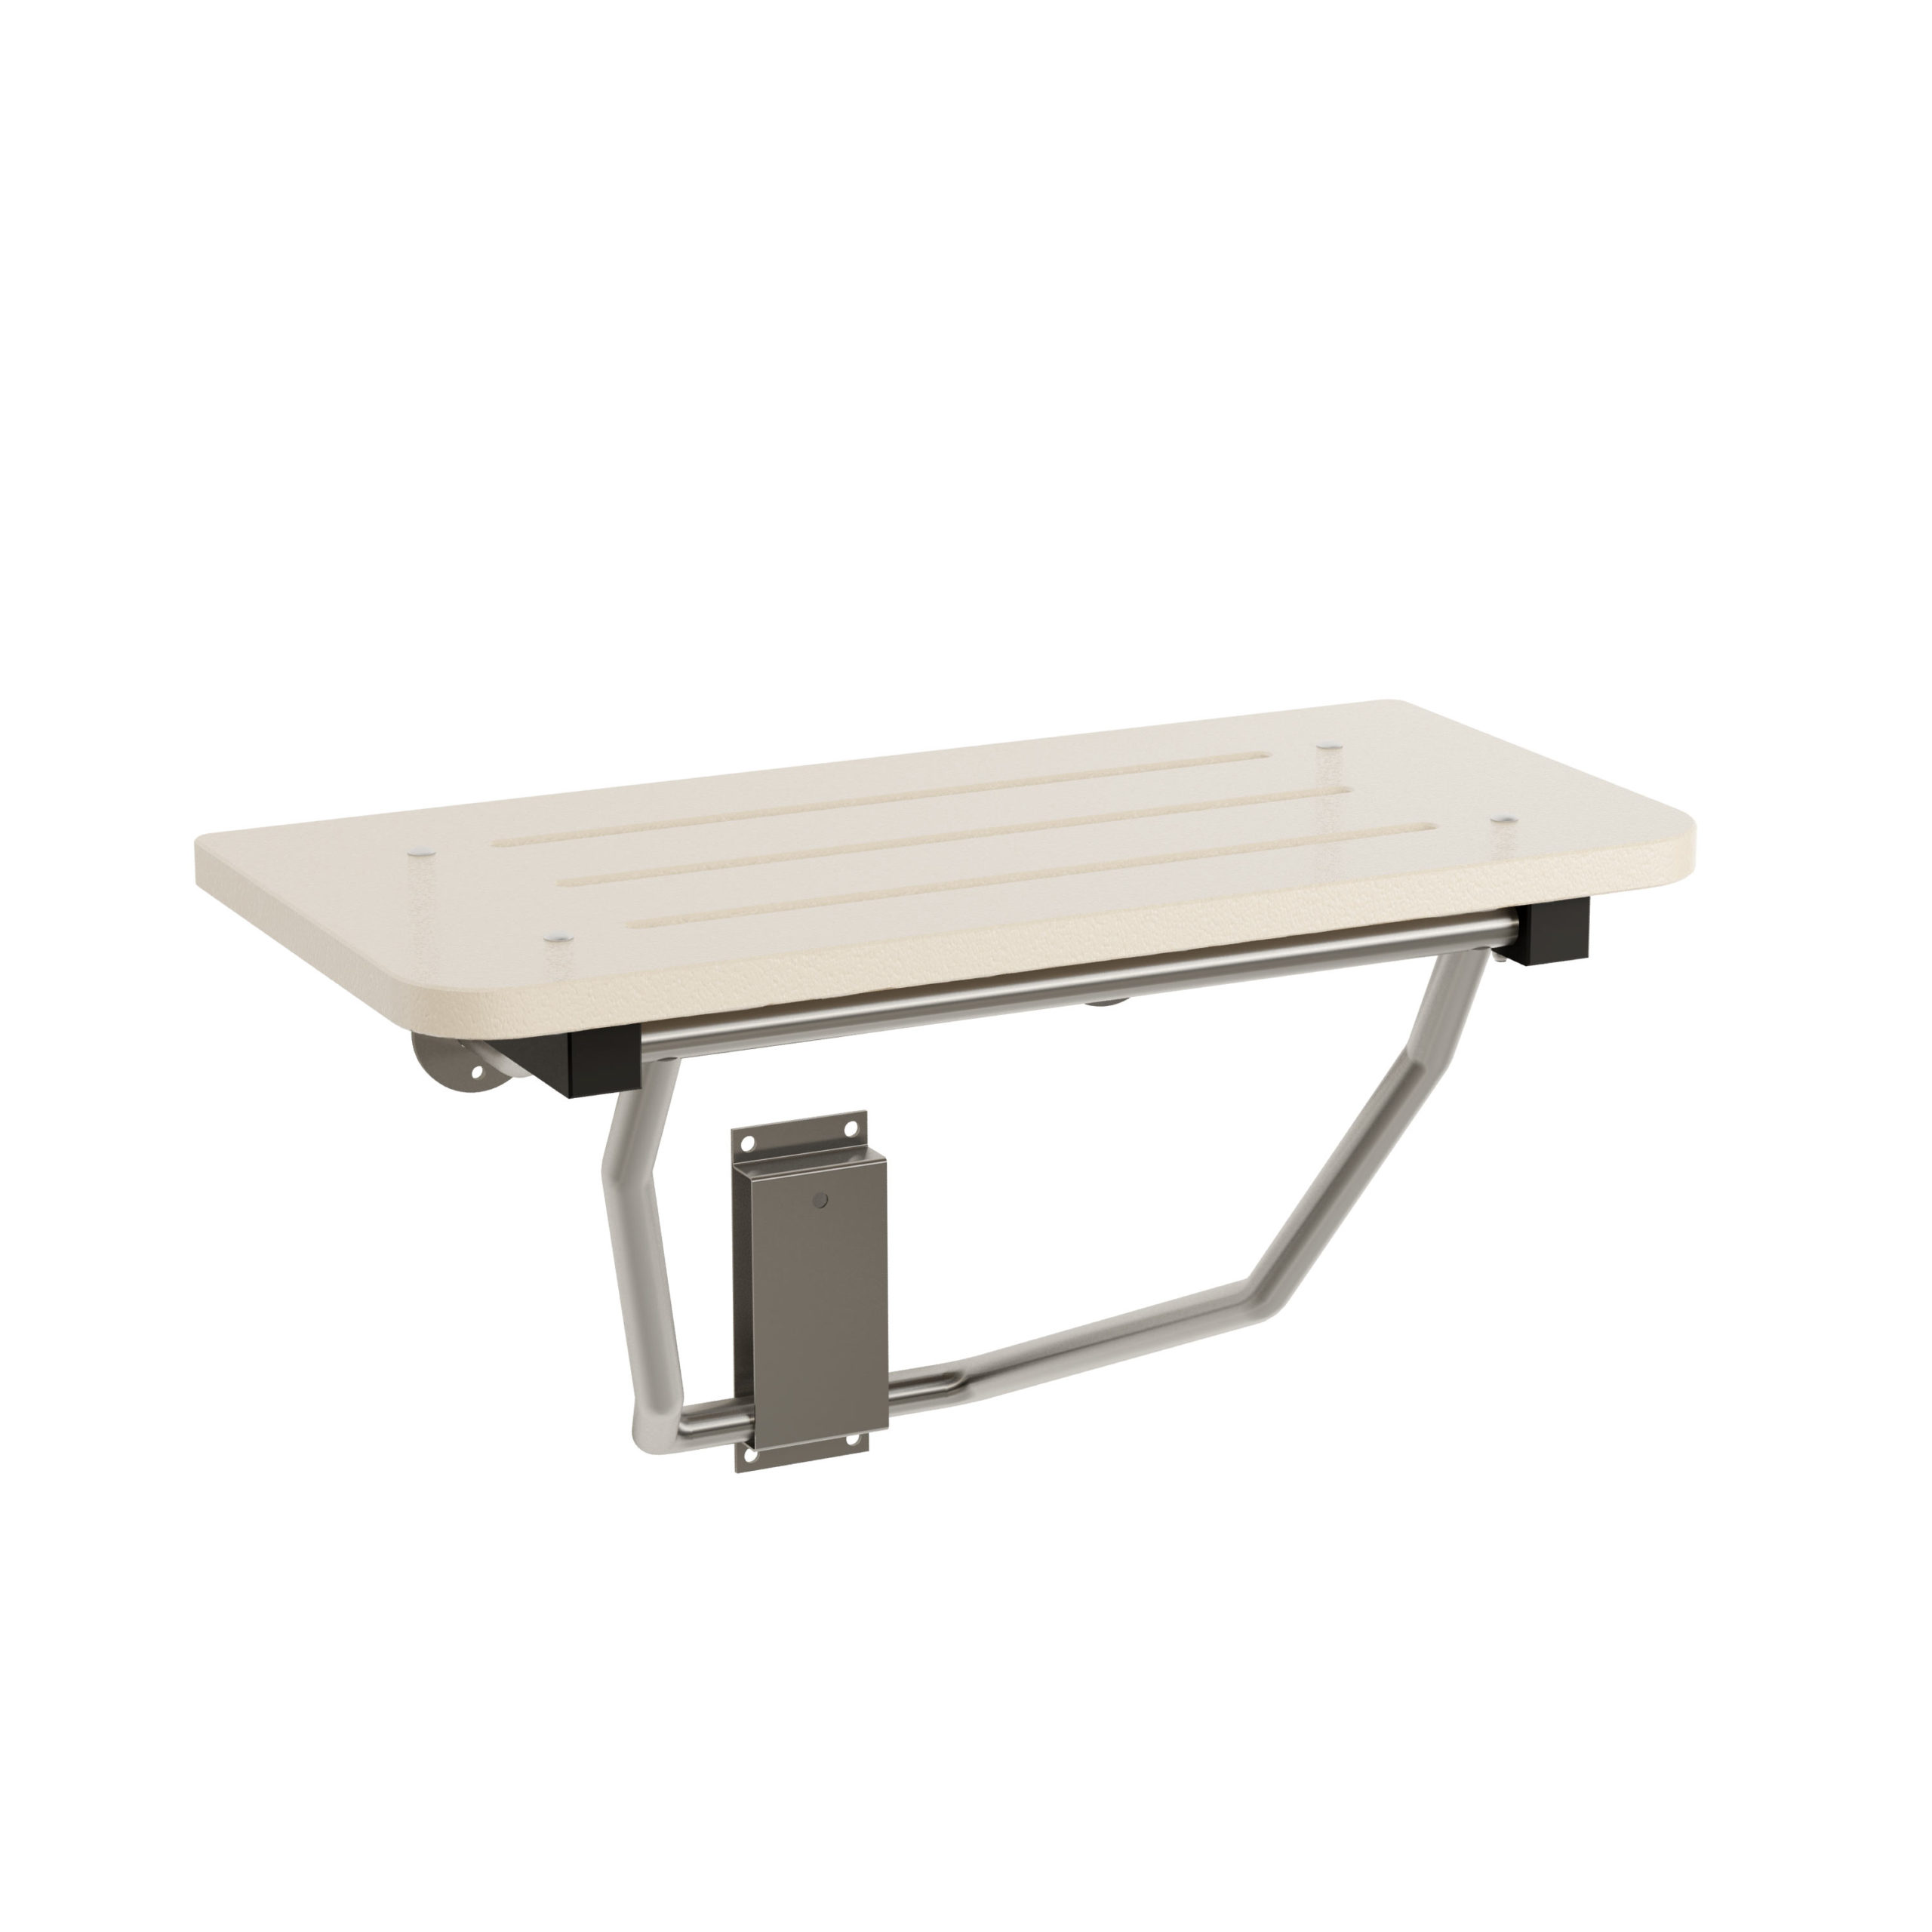 Bradley 9593 Folding Shower Seat - White, Bradmar, Barrier Free